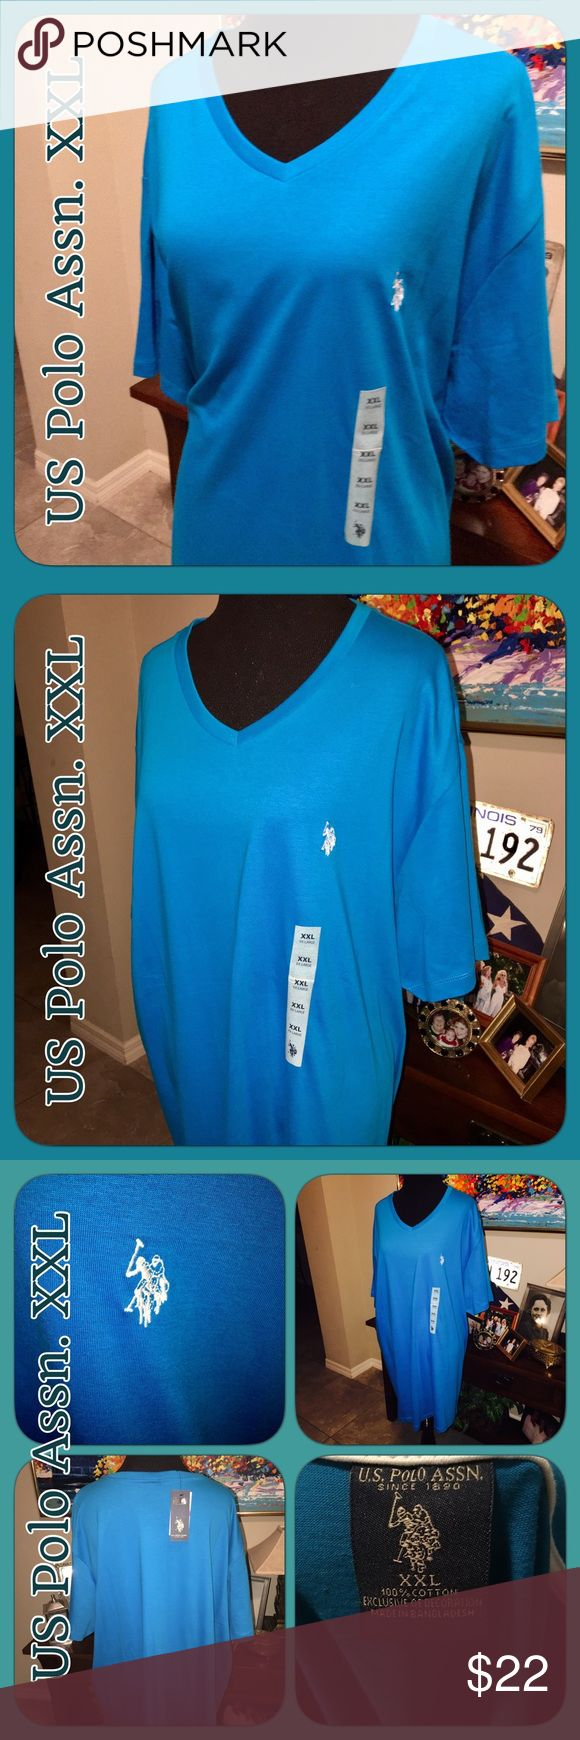 🌷NWT US Polo Association V Neck XXL NWT US Polo Association Turquoise VNeck tshirts. Has the Polo emblem on chest. Is a little long but not as much as it looks on mannequin, I think it looks longer because mannequin is so small, but on the proper size person it would be a good length! Still longer but not to your knees! Beautiful color! Brand new with tags!! US Polo Association Tops Tees - Short Sleeve